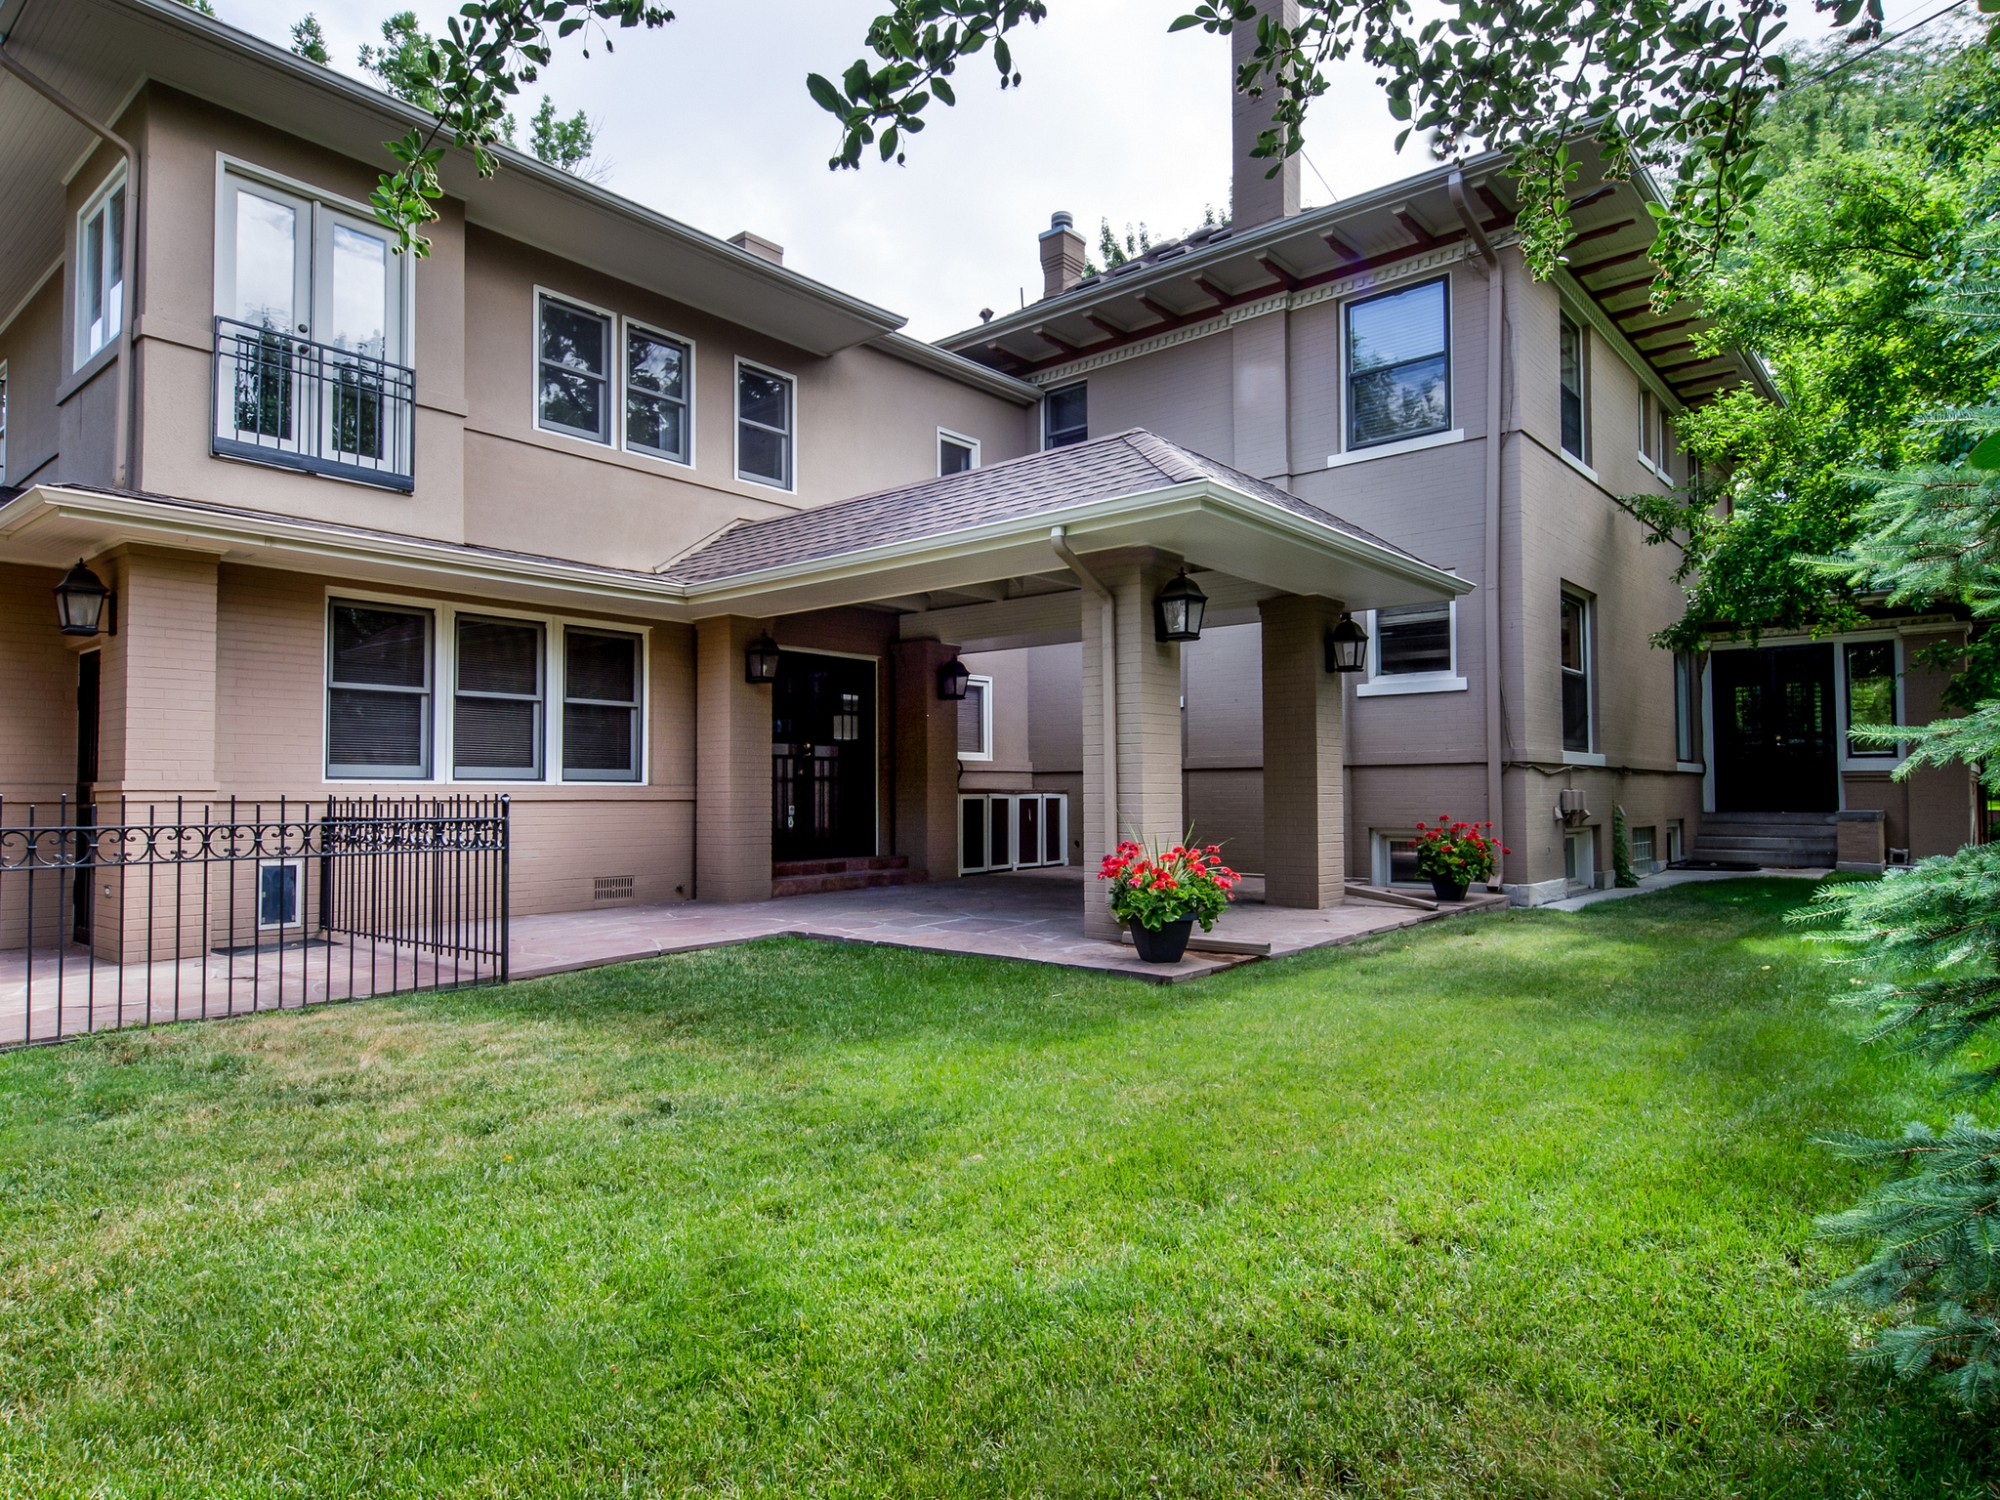 305 Franklin St, Denver, CO 80218